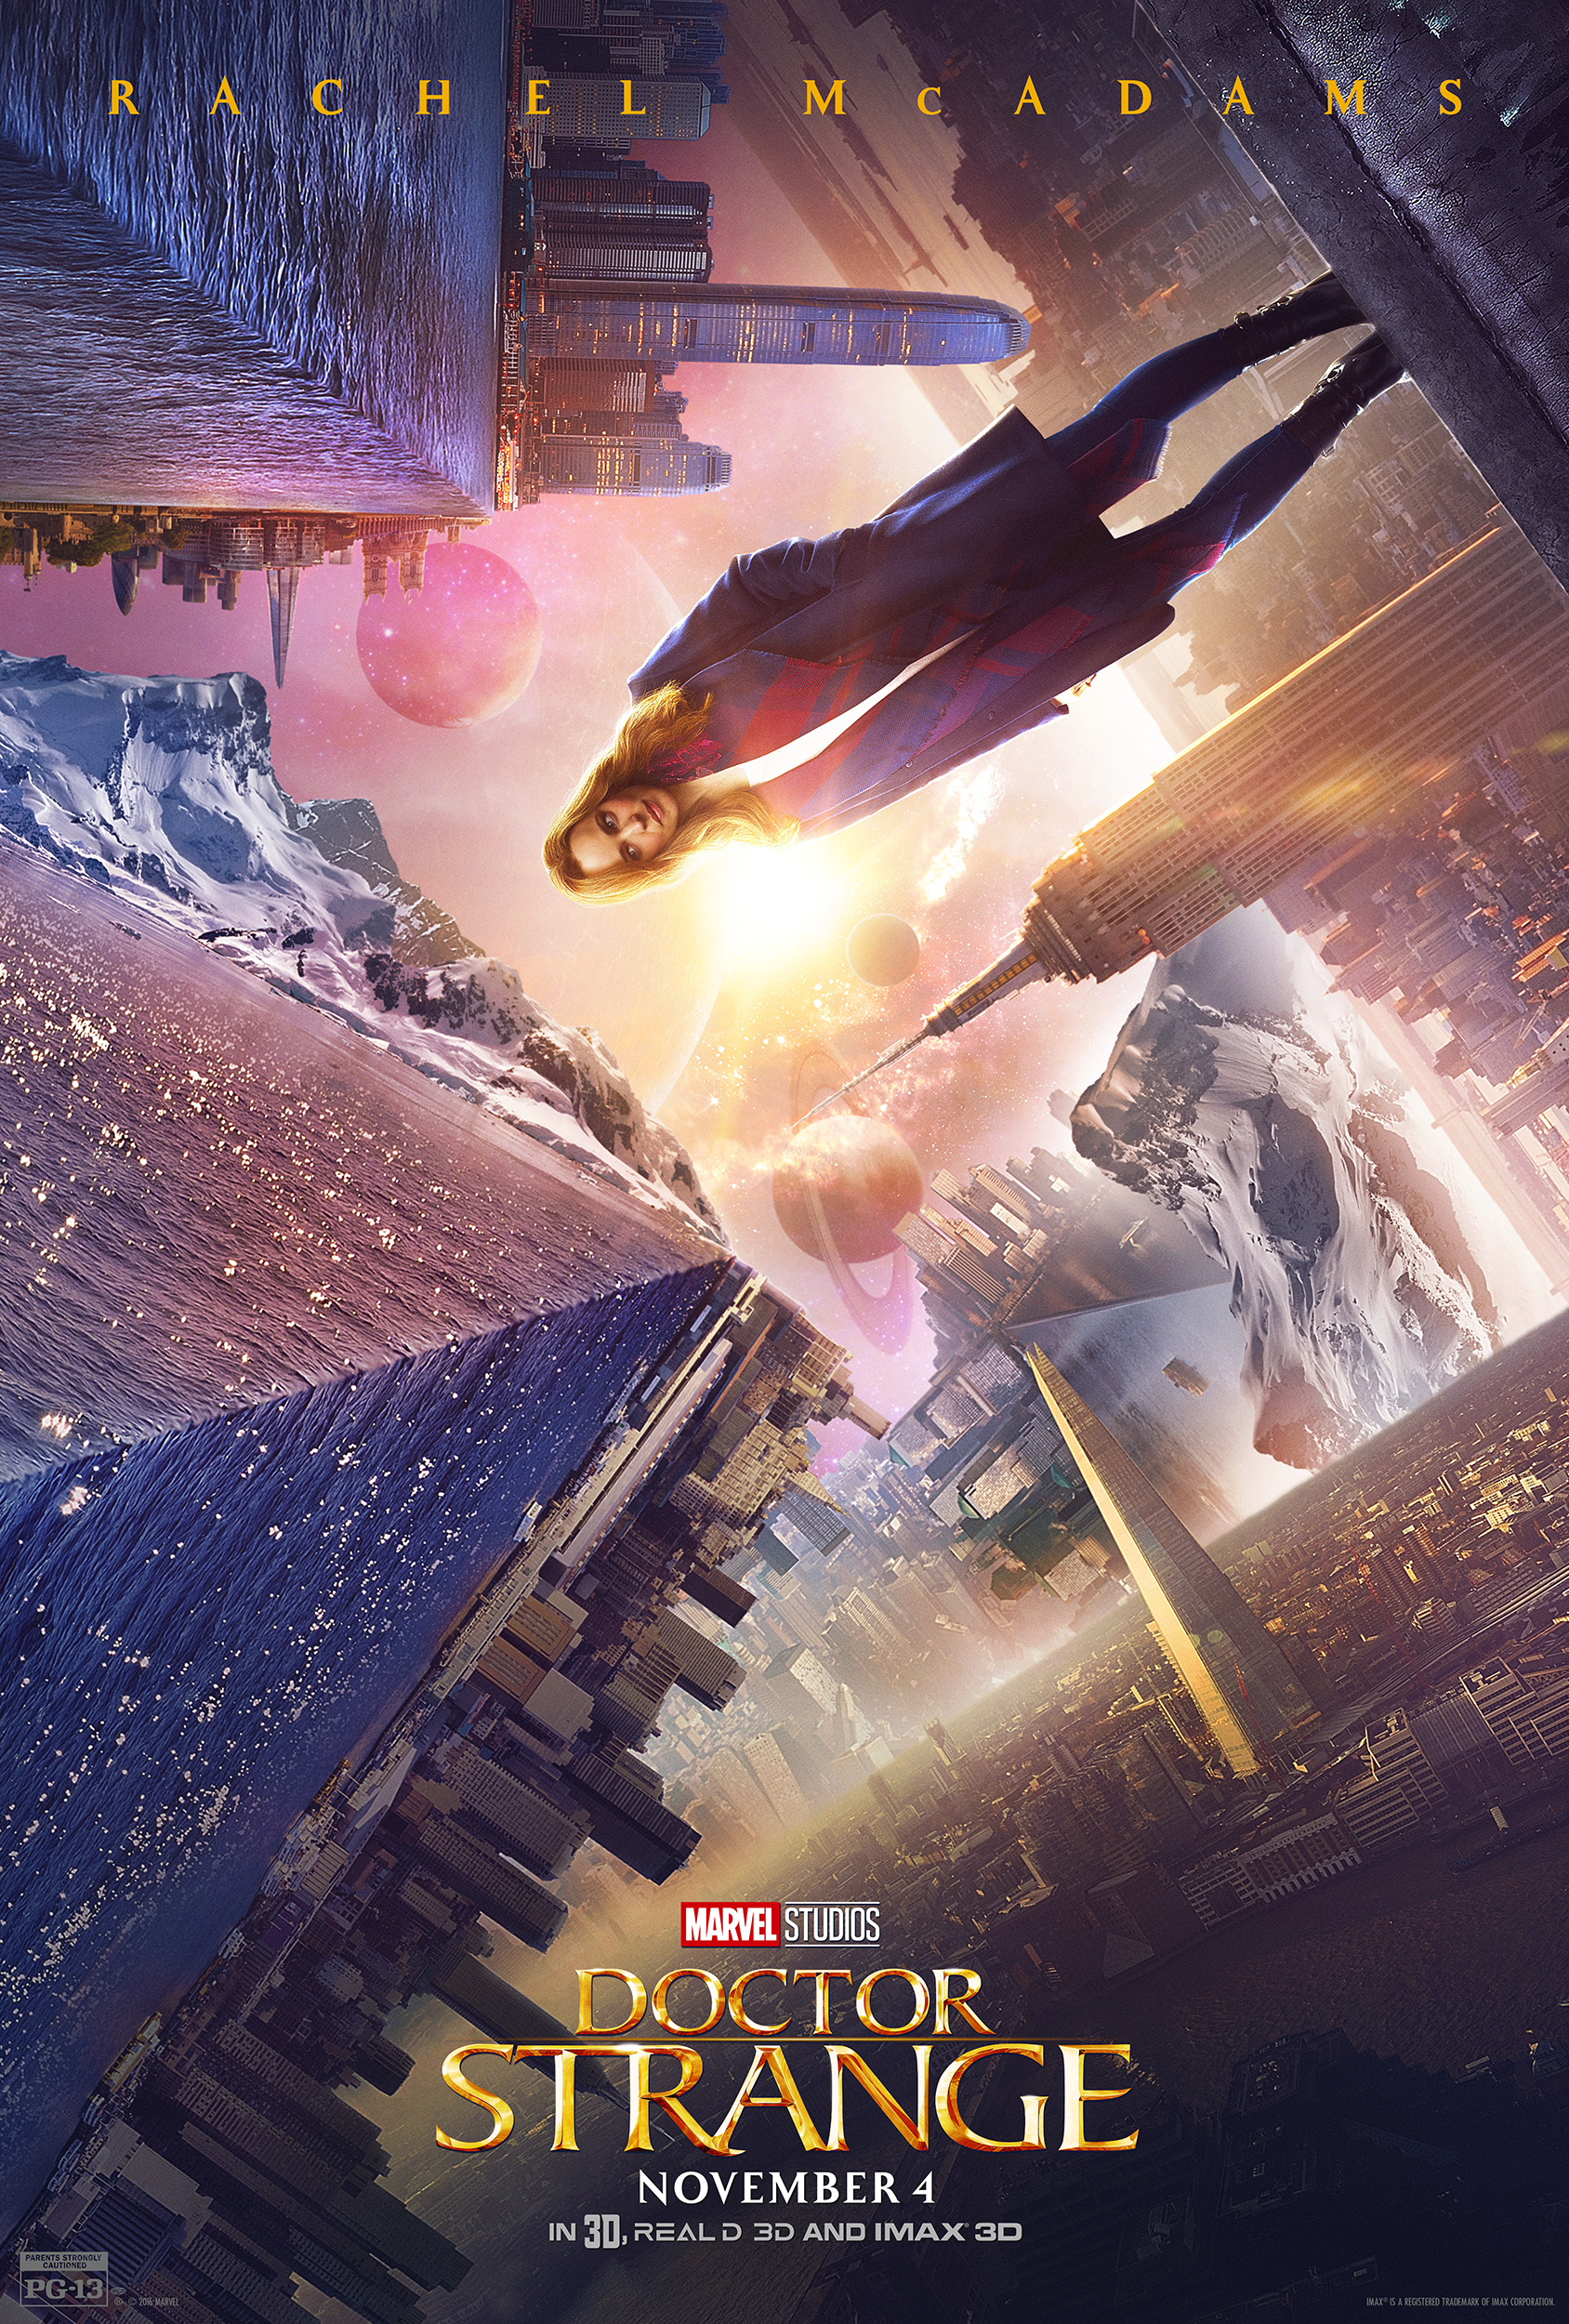 Brand New Doctor Strange Character Posters and Stills Reveal an Impossible World!